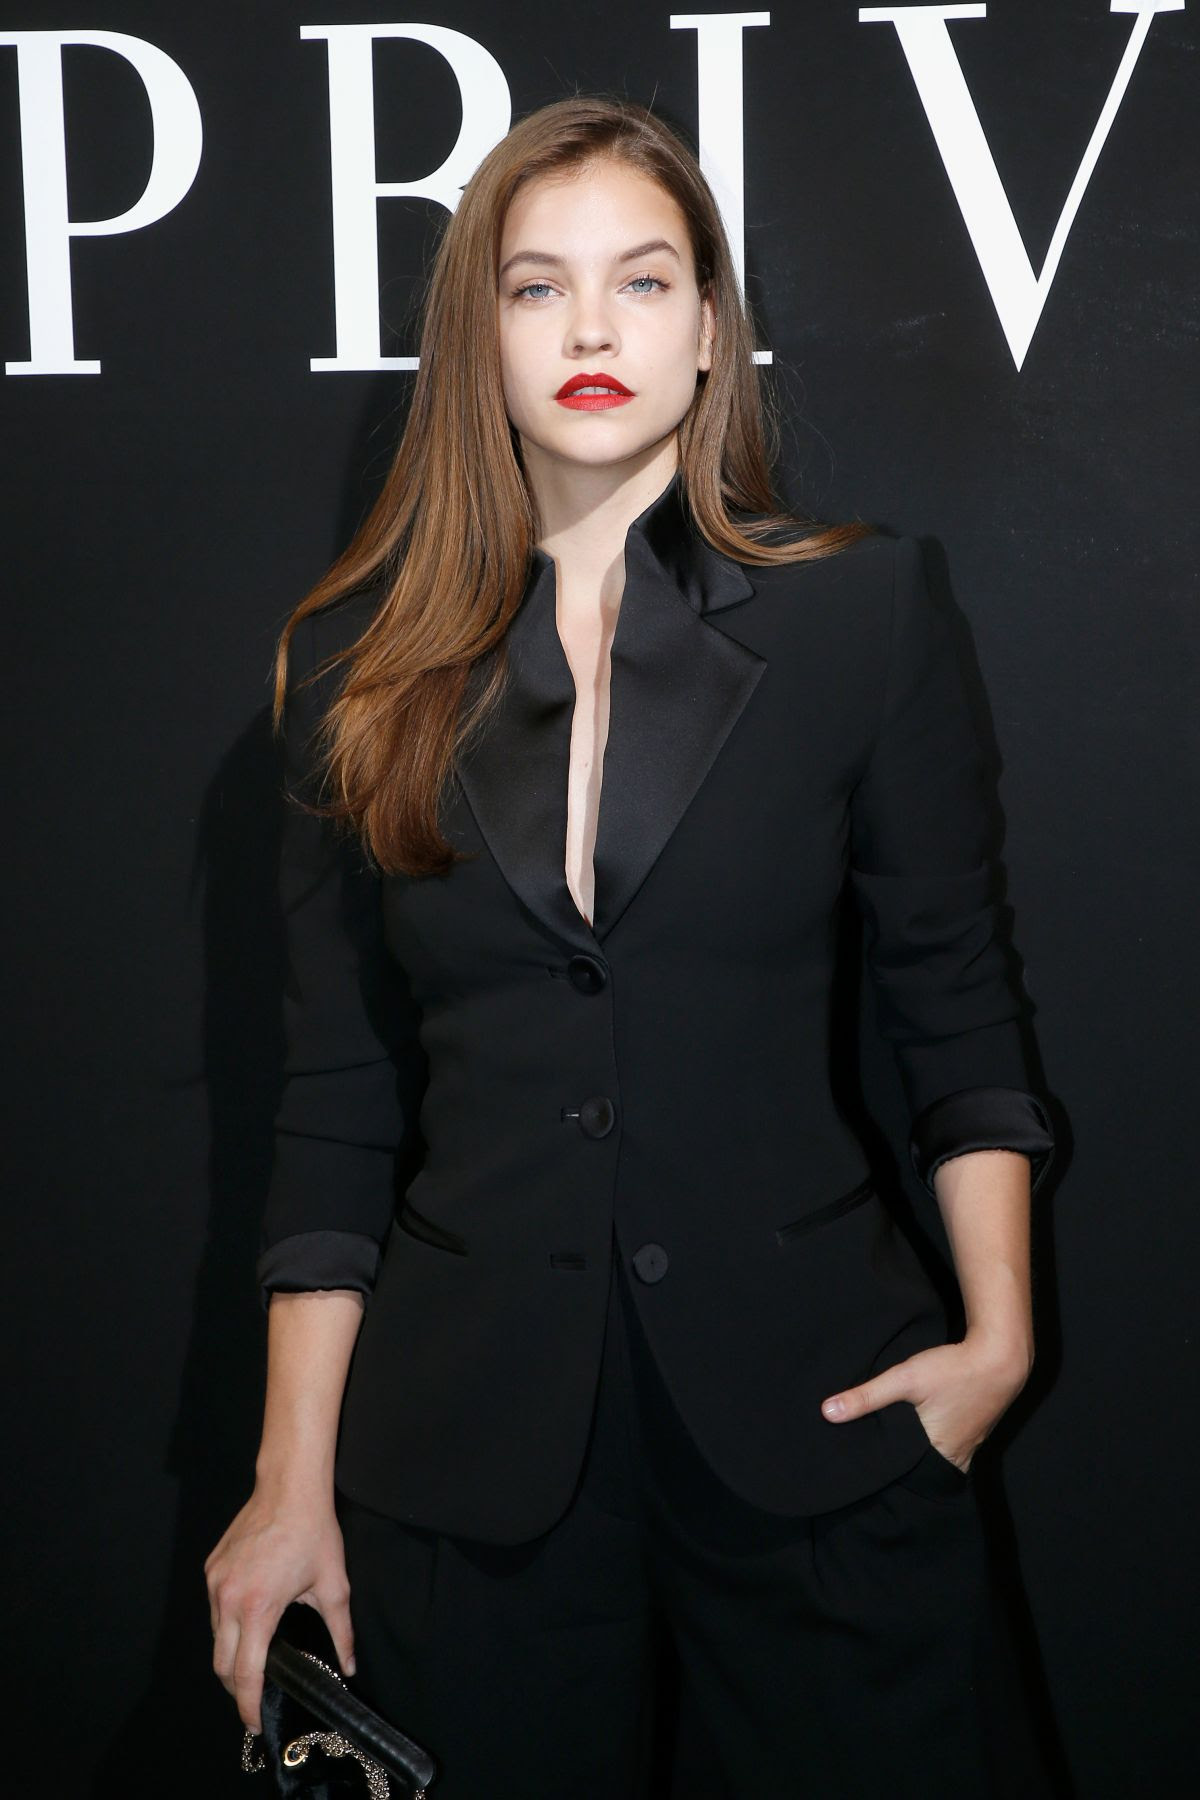 BARBARA PALVIN at Giorgio Armani Prive Haute Couture Show in Paris 07/04/2017